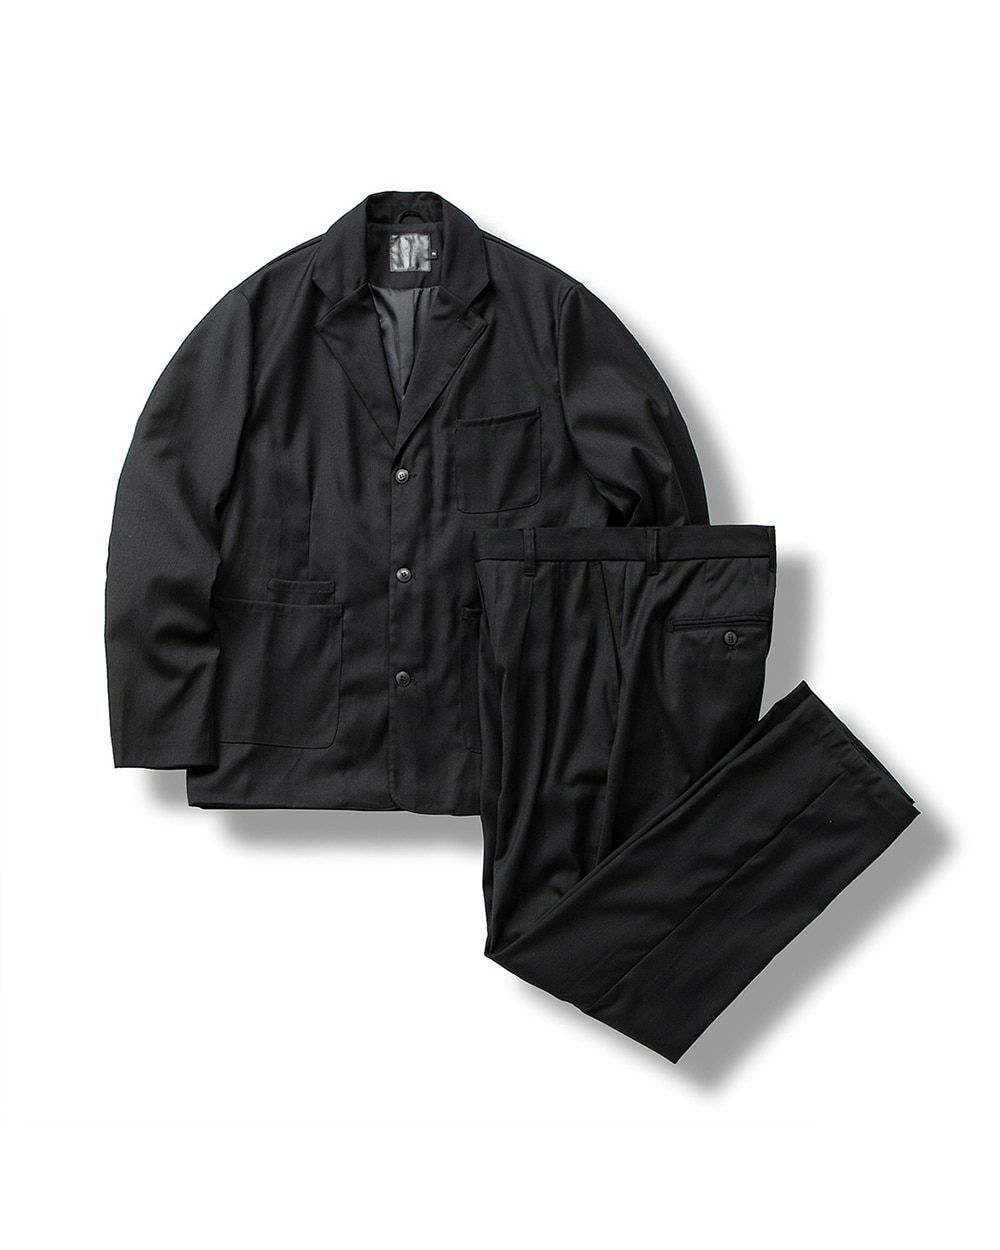 (FW) FORMAL SET UP BLACK